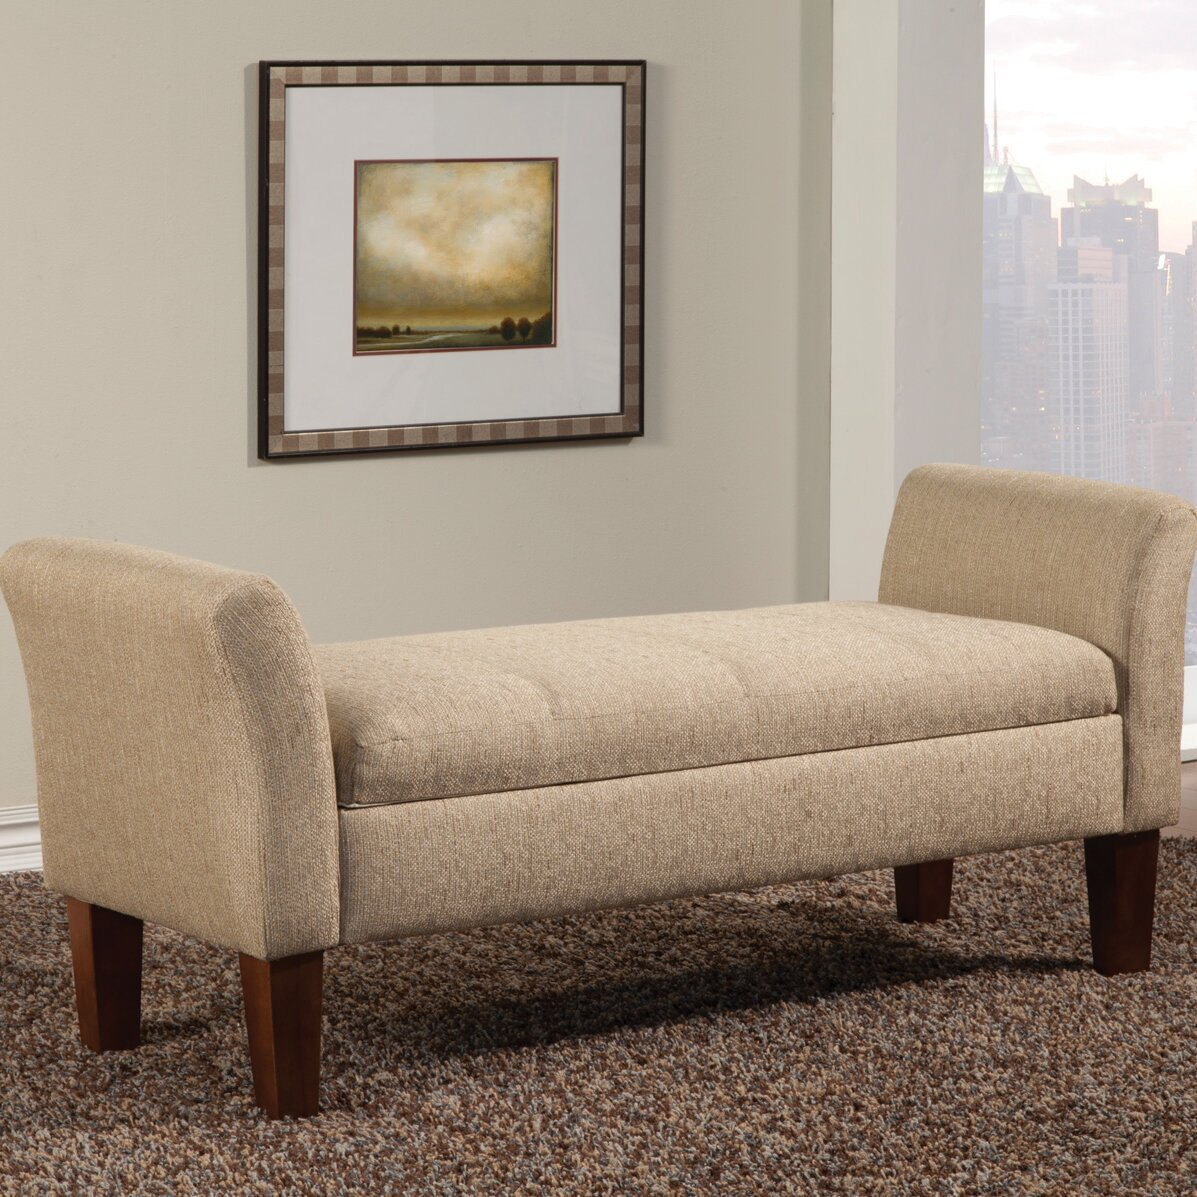 Wildon Home ® Upholstered Storage Bedroom Bench & Reviews